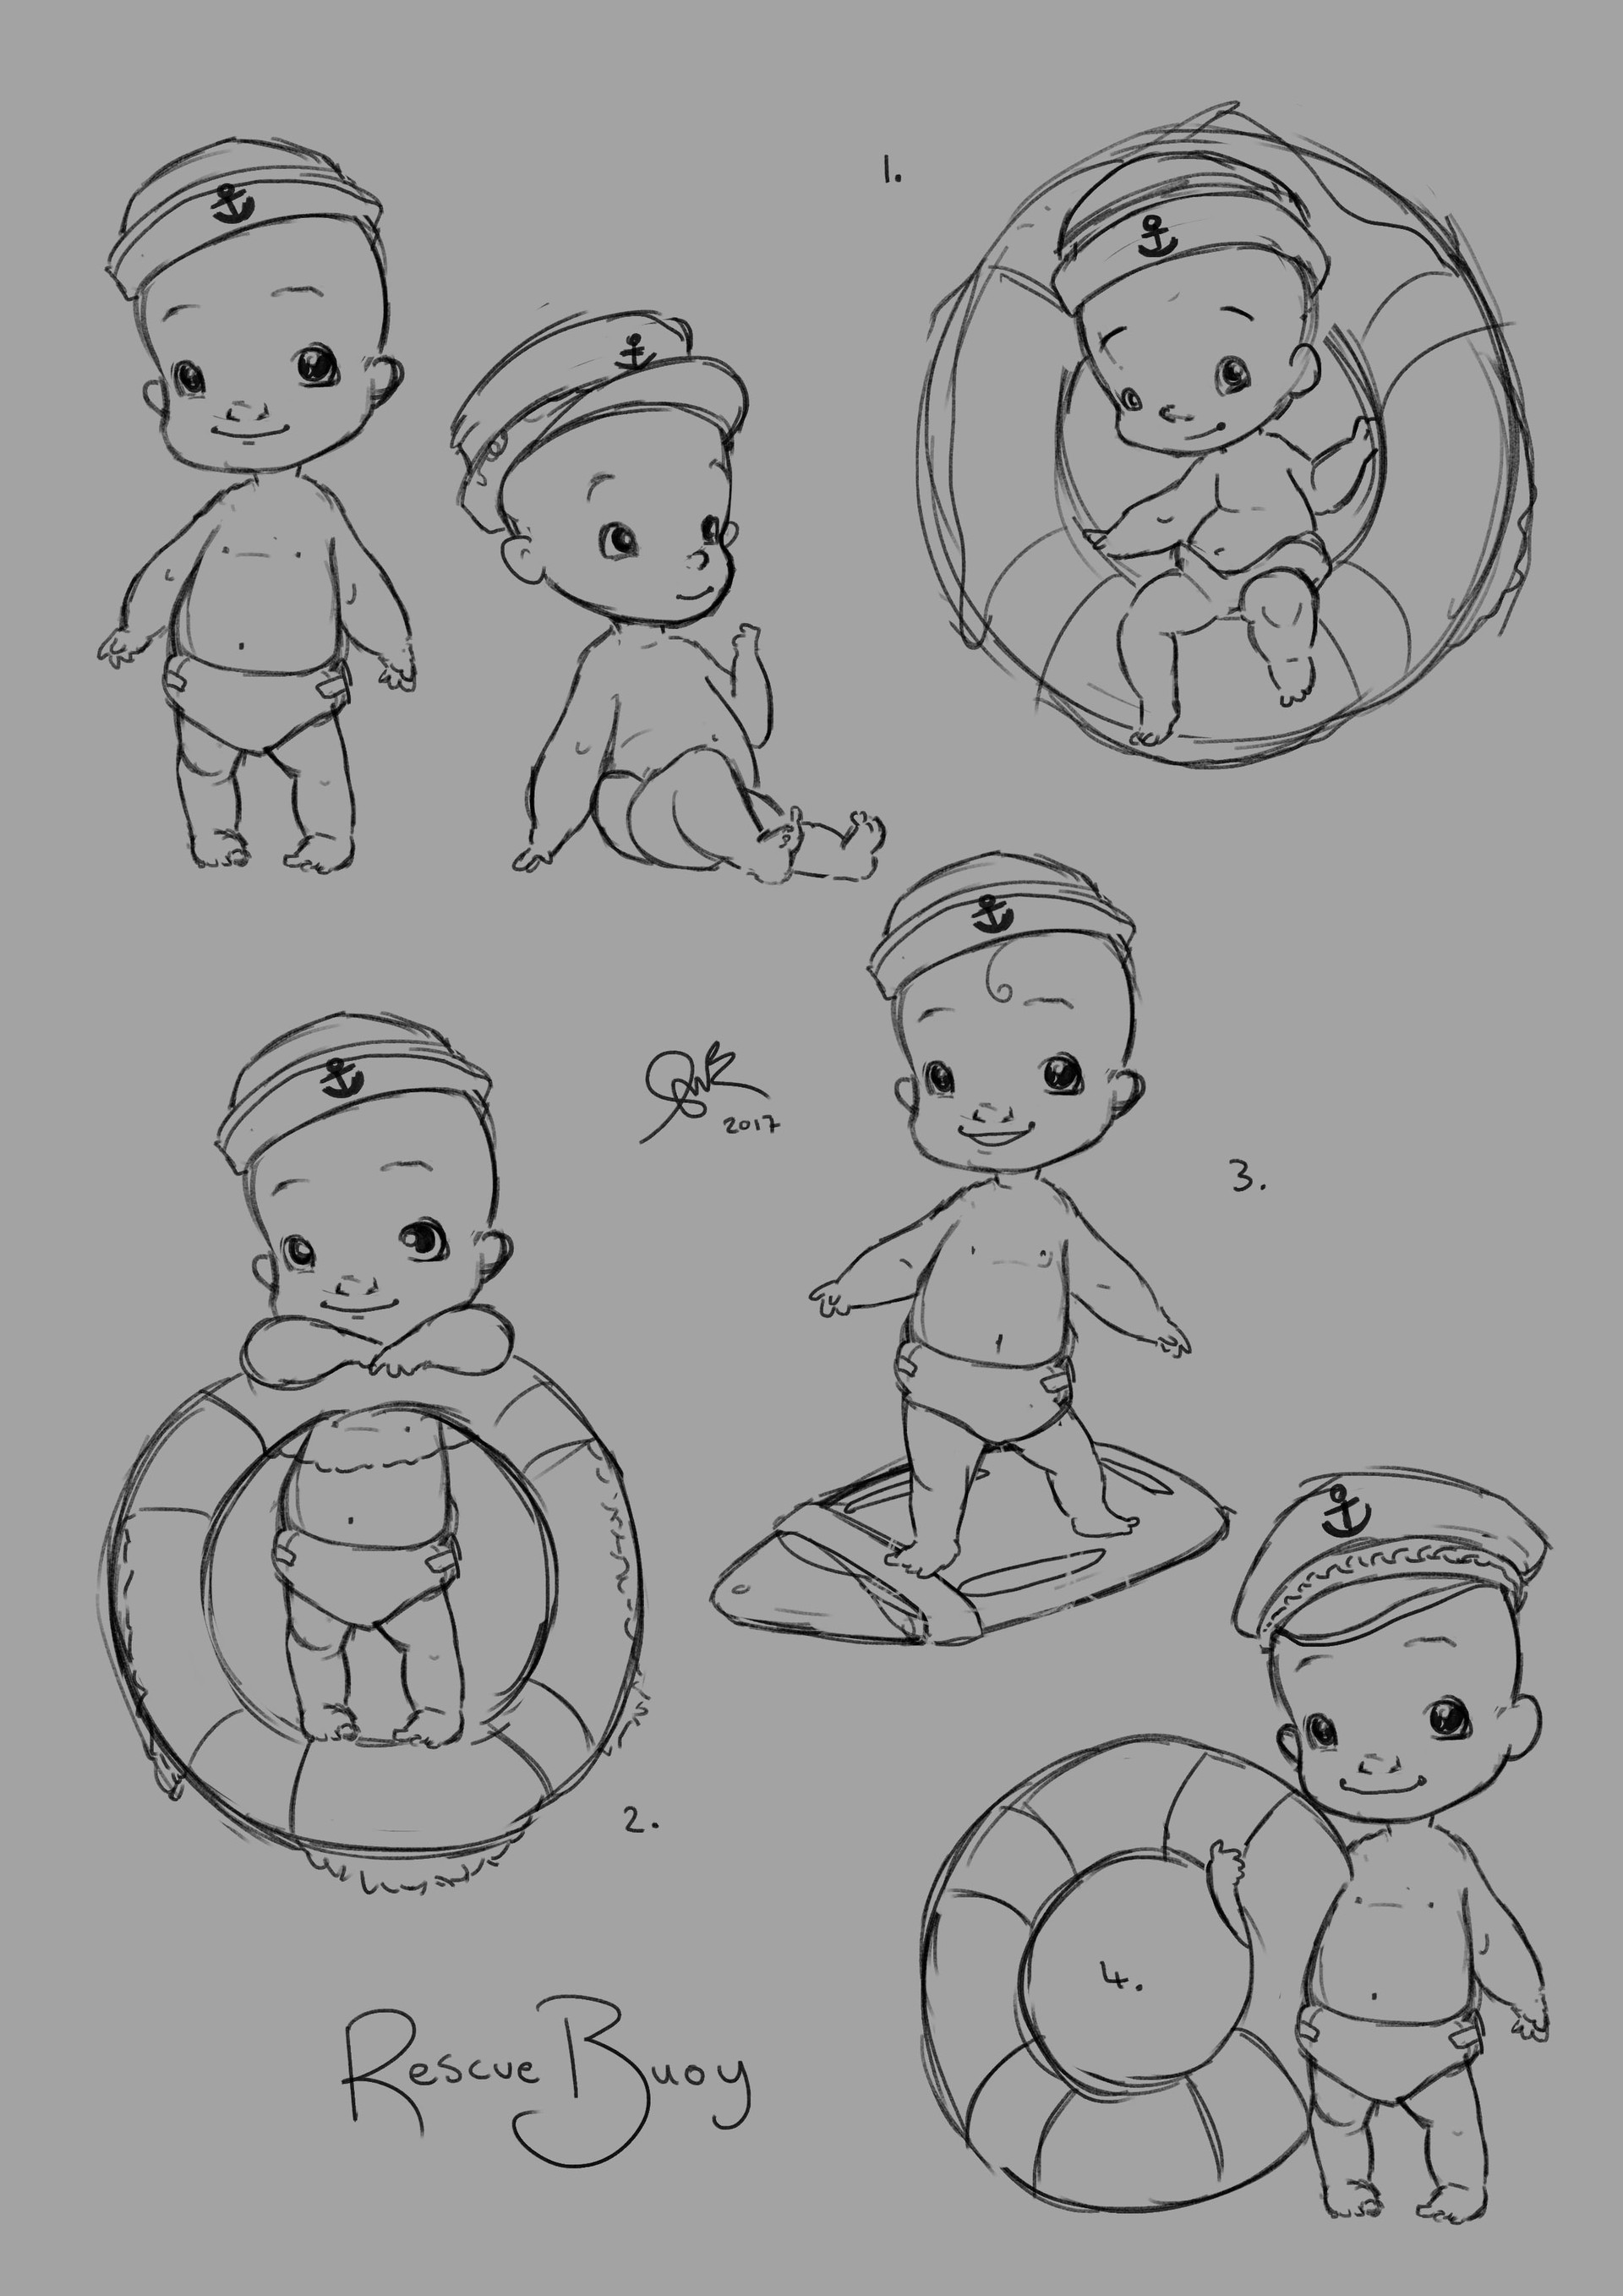 Shellz art rescue buoy concepts